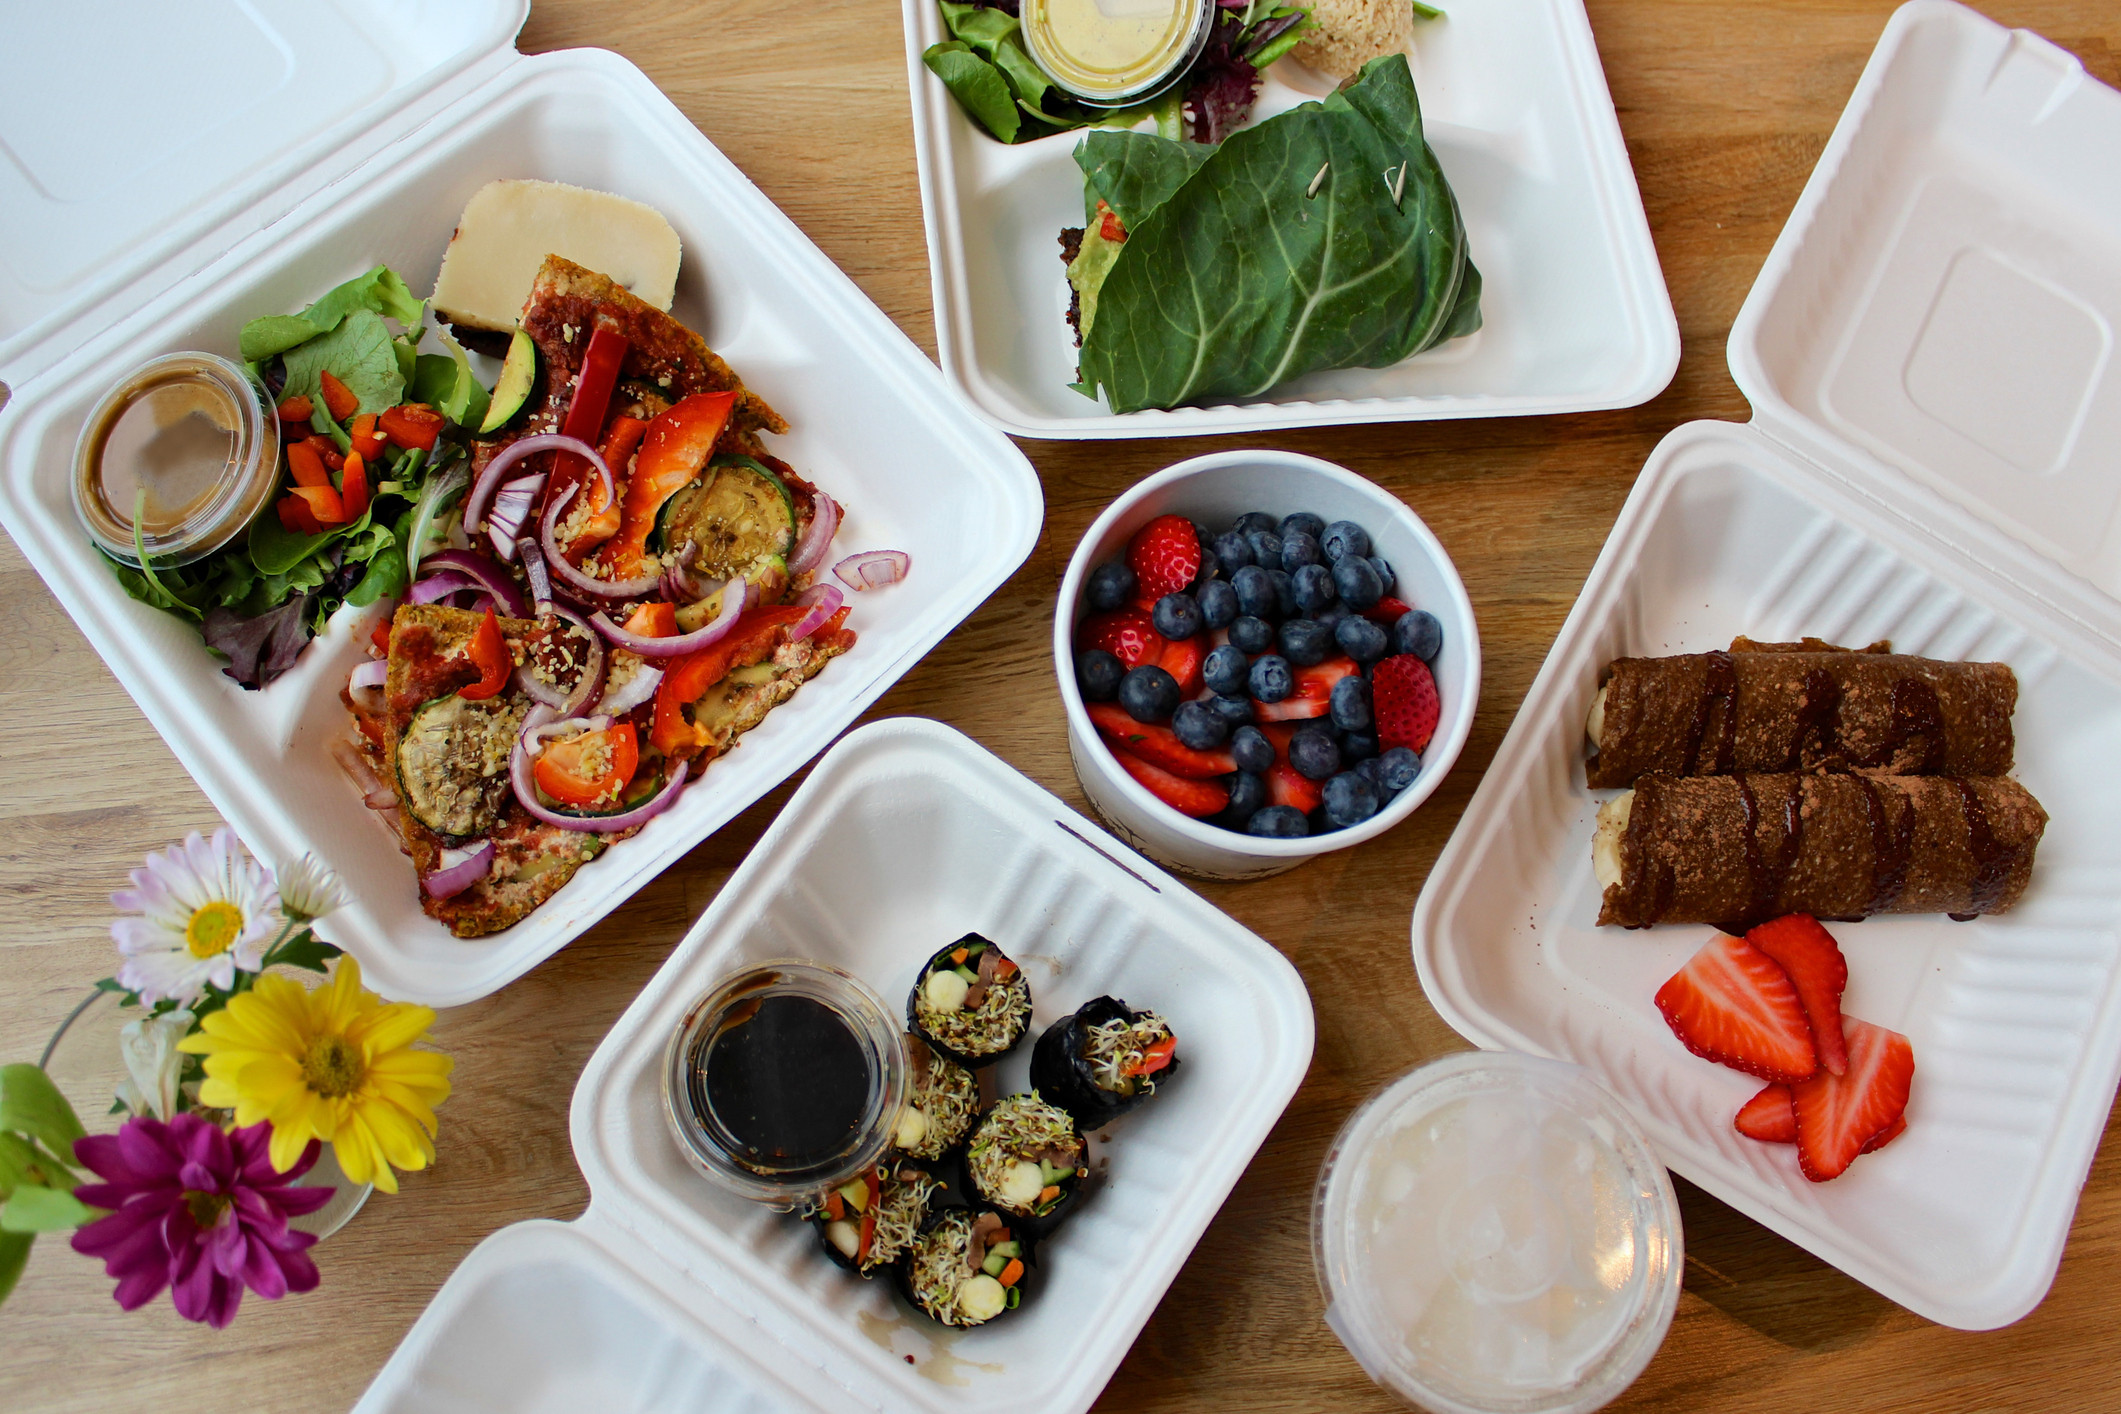 Healthy Breakfast Takeout  Just Eat pays up to £240M for Delivery Hero's UK ops £66M